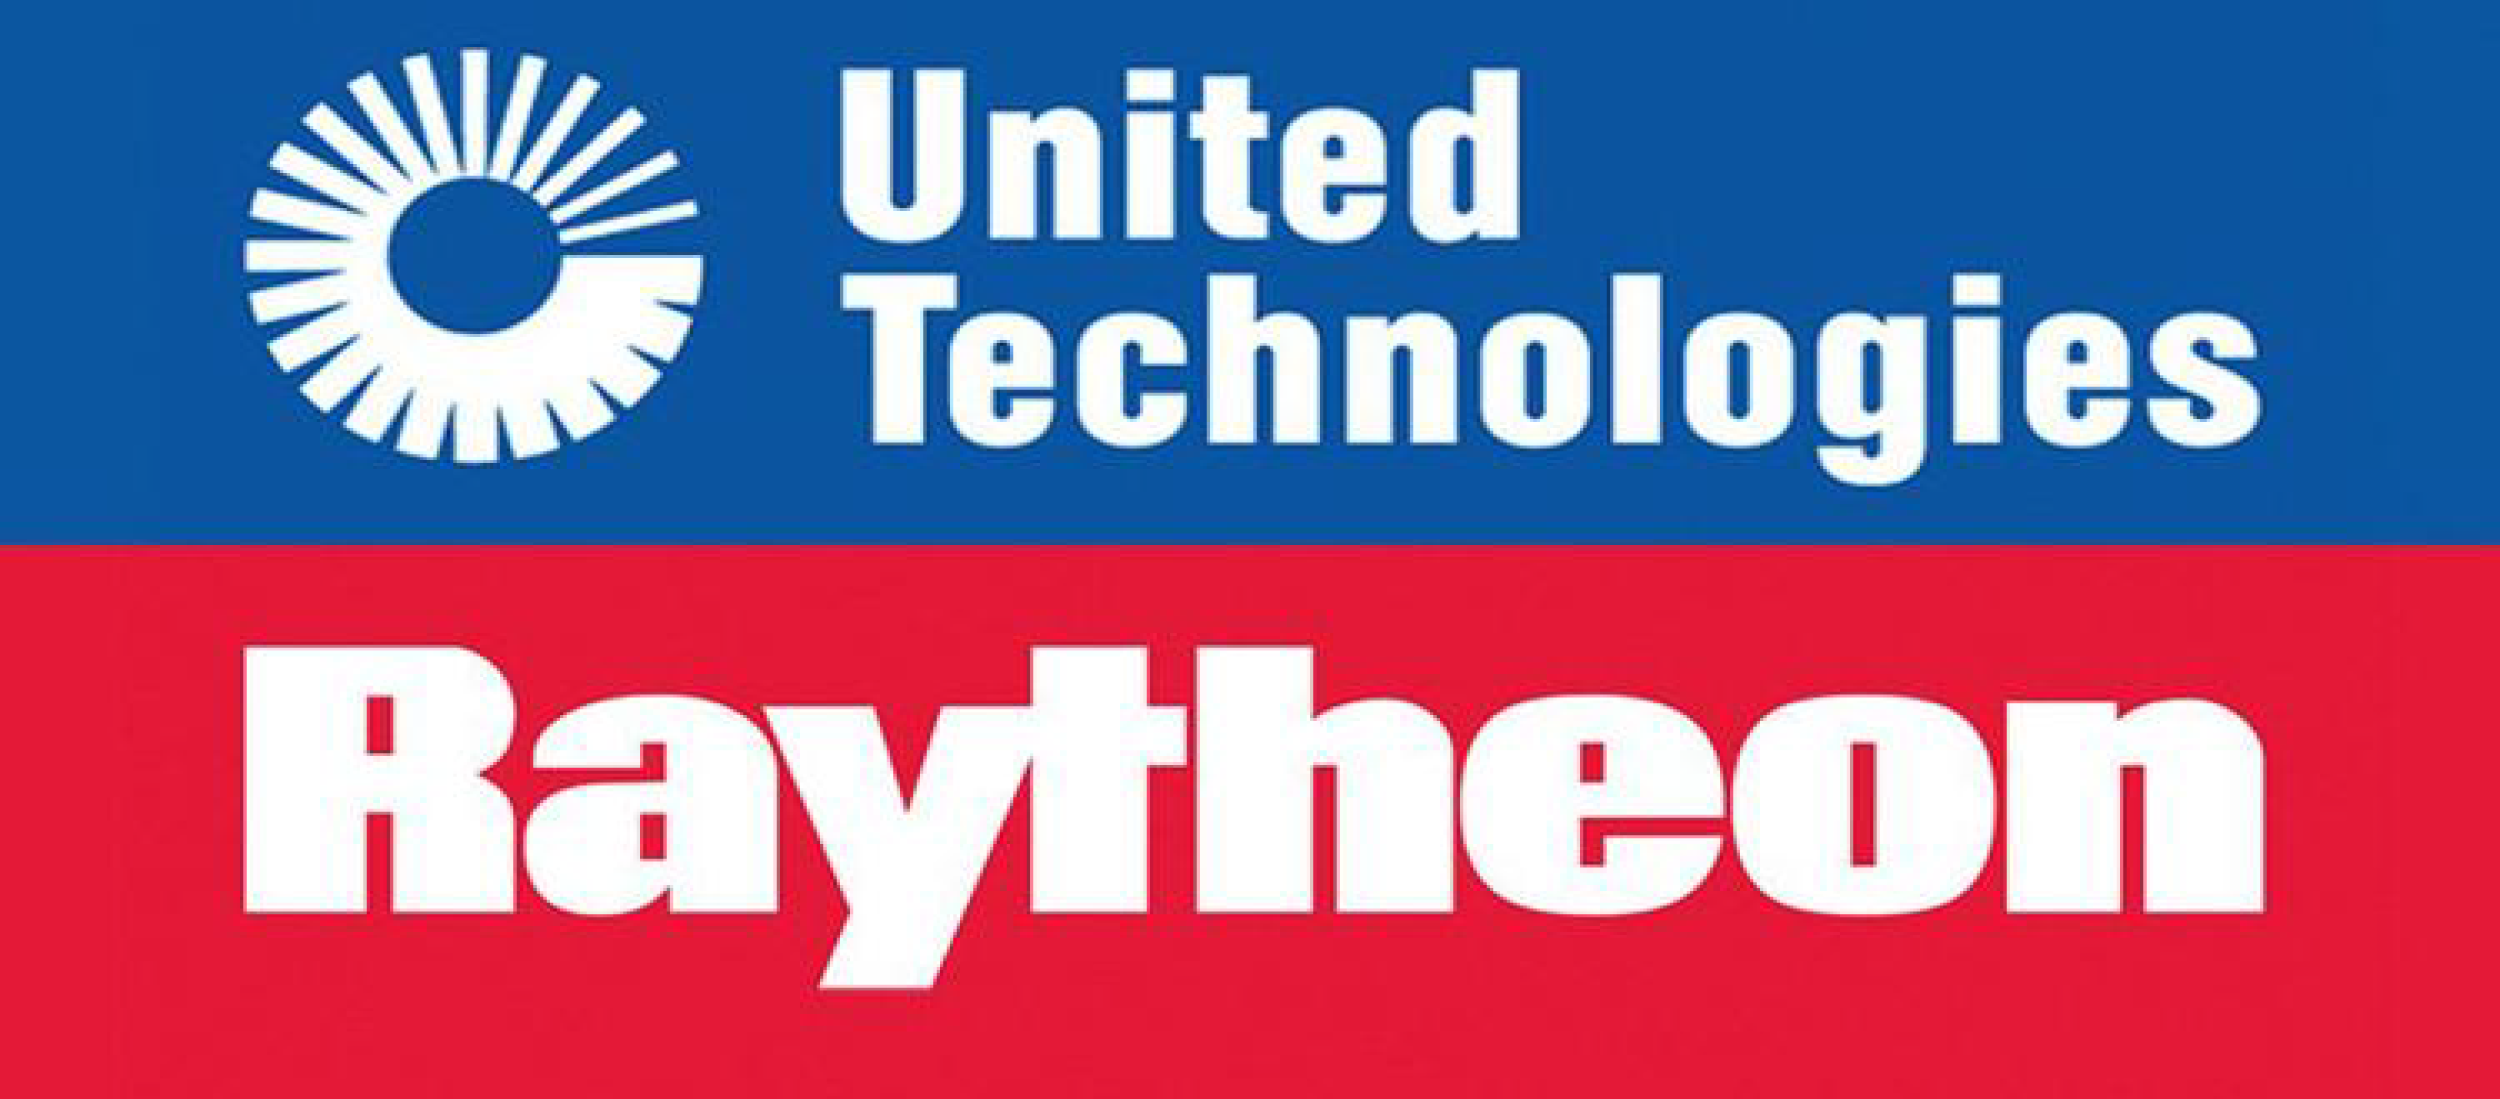 raytheon-utech-blog-header.png